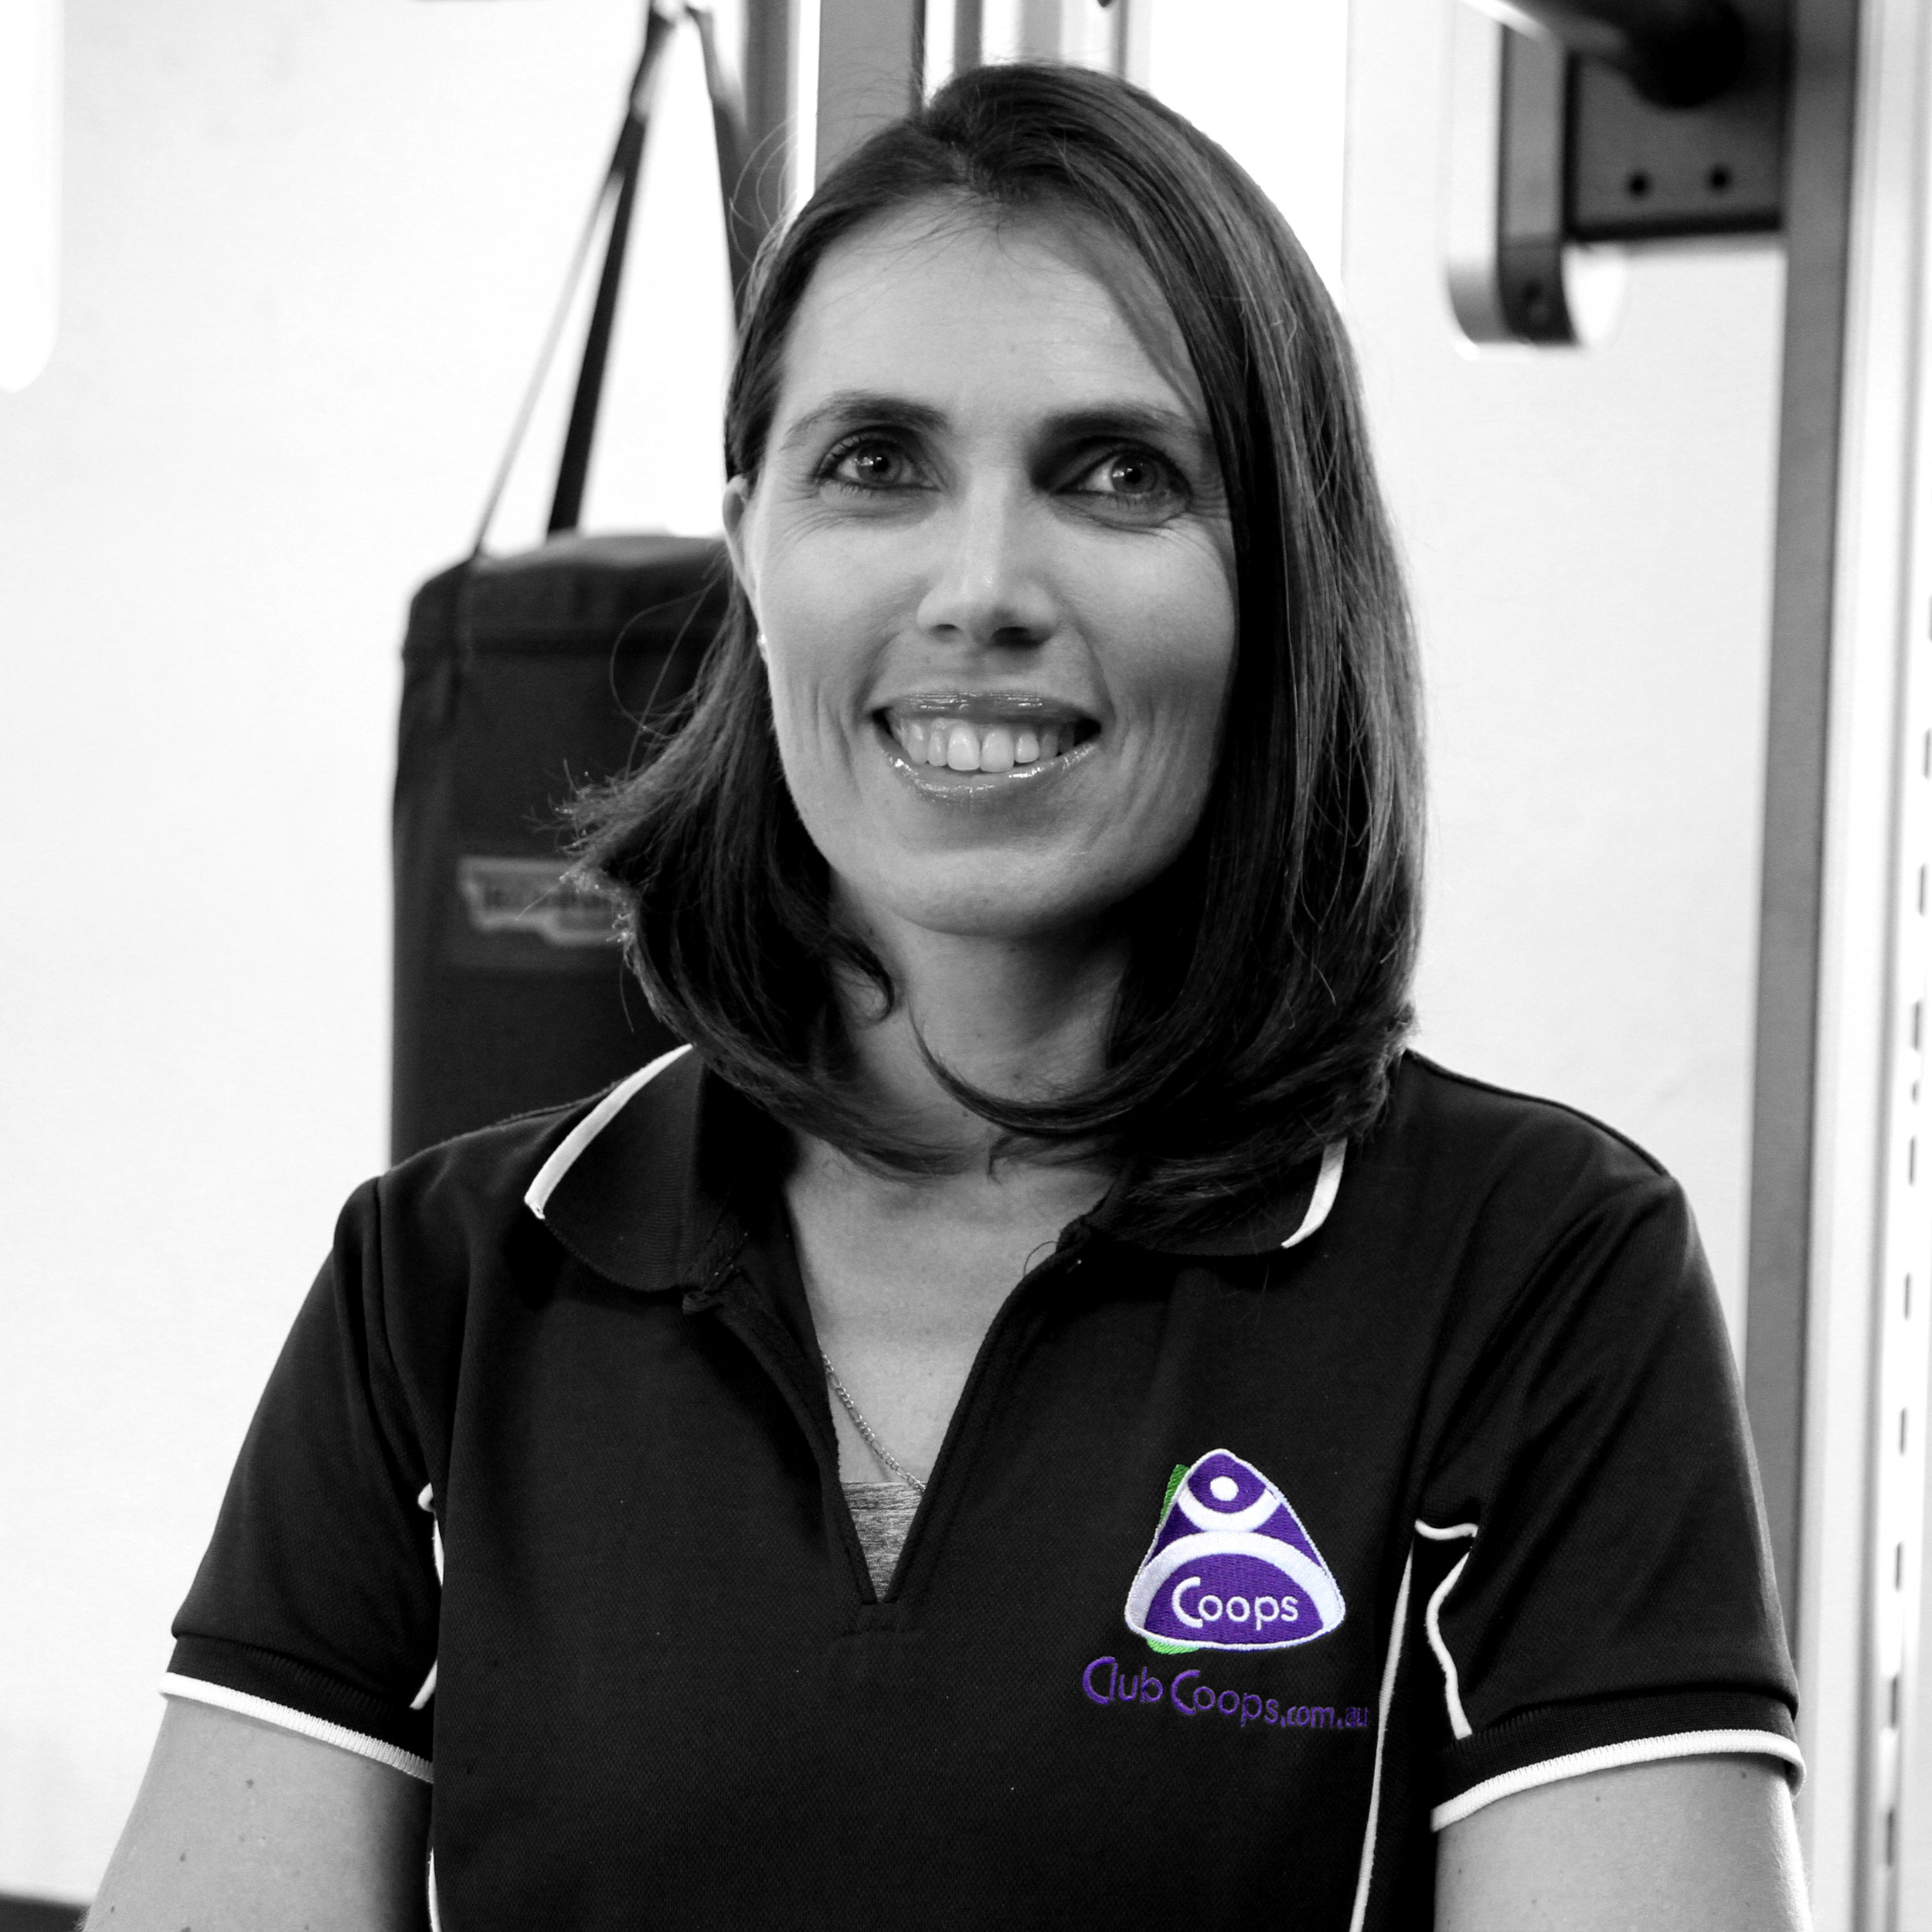 Christine Faull   I am a mother of 3 who has had a passion for fitness since my 3 rd child was born 6 years ago. As you can imagine 3 pregnancies left me with excess weight and a less than weak core. I was drawn to training through needing help myself and this is where I found my passion. After losing the excess weight and rehabilitating my core it became very real to me that I can help others do the same. I get it as a busy Mum we need time efficient workouts and nutrition that the whole family can eat and this is where I am today a trainer to those busy mums who need just that.  I believe exercise is for everyone, and finding something that you love is critical. I will help you find what works for you, and together we can shape your body, mind and soul into the best version of yourself.  Qualifications:   Cert III and IV in Fitness  Love working with : Mums who want to be fit and healthy to be able to give the best of themselves to their families.   'Your life is made up of 2 dates and a dash – its what you make of the dash that counts!'